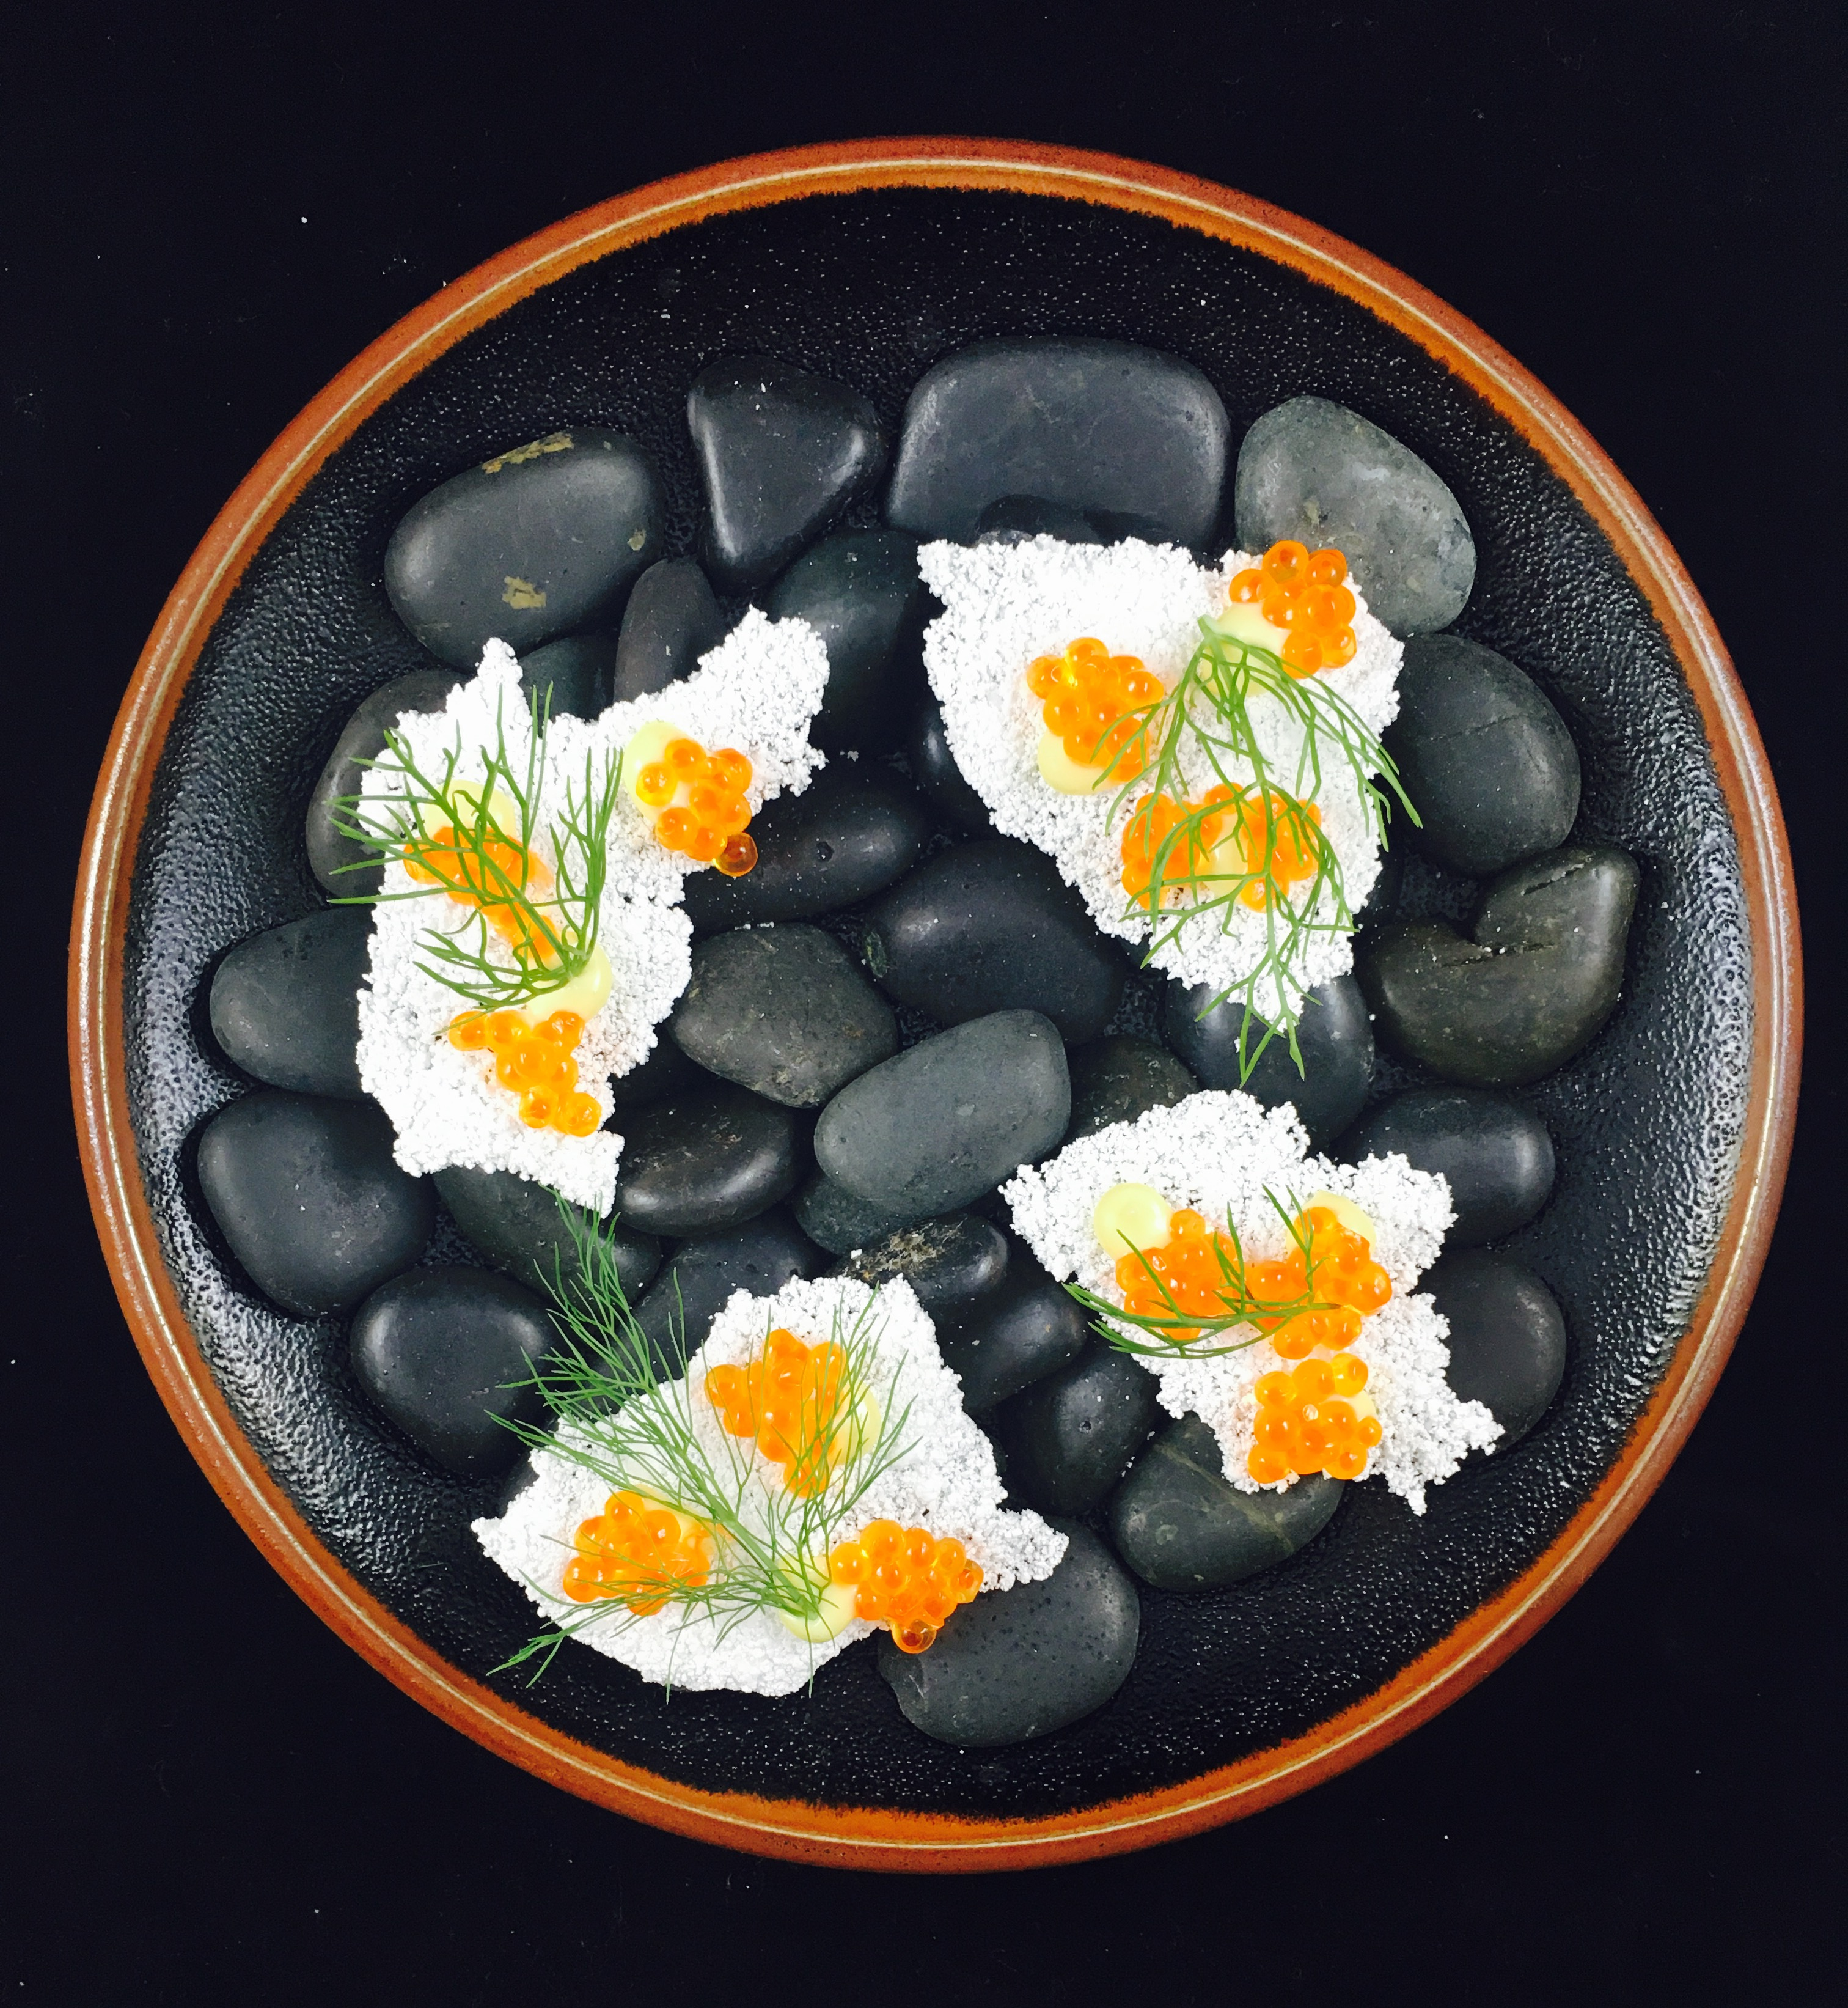 Rodriguez personally likes to start with a cup of unfiltered sake and the miso-cured Mirada oyster with pears macerated in hibiscus sake and wasabi crema, served over smoking hay which lends a whiff of earthiness. (Image: Courtesy Consoci)